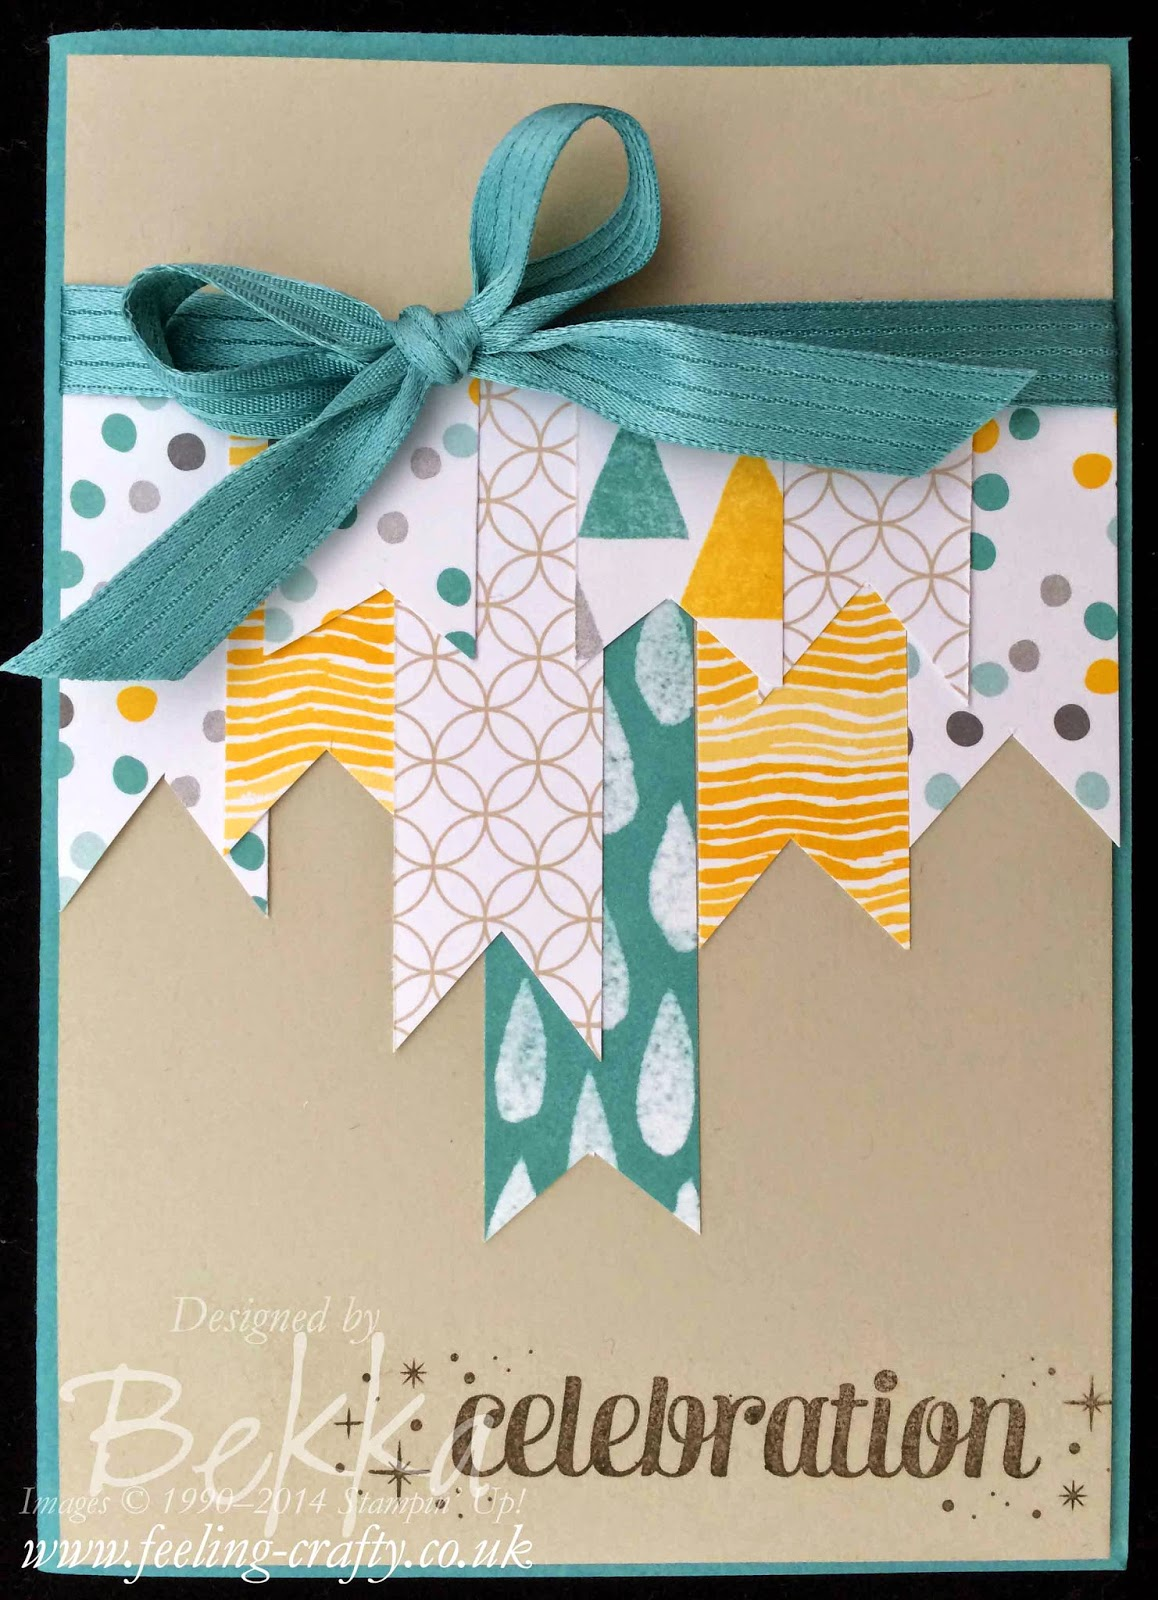 A Card Using Up Scraps of Paper & Other Scrapbooking Supplies